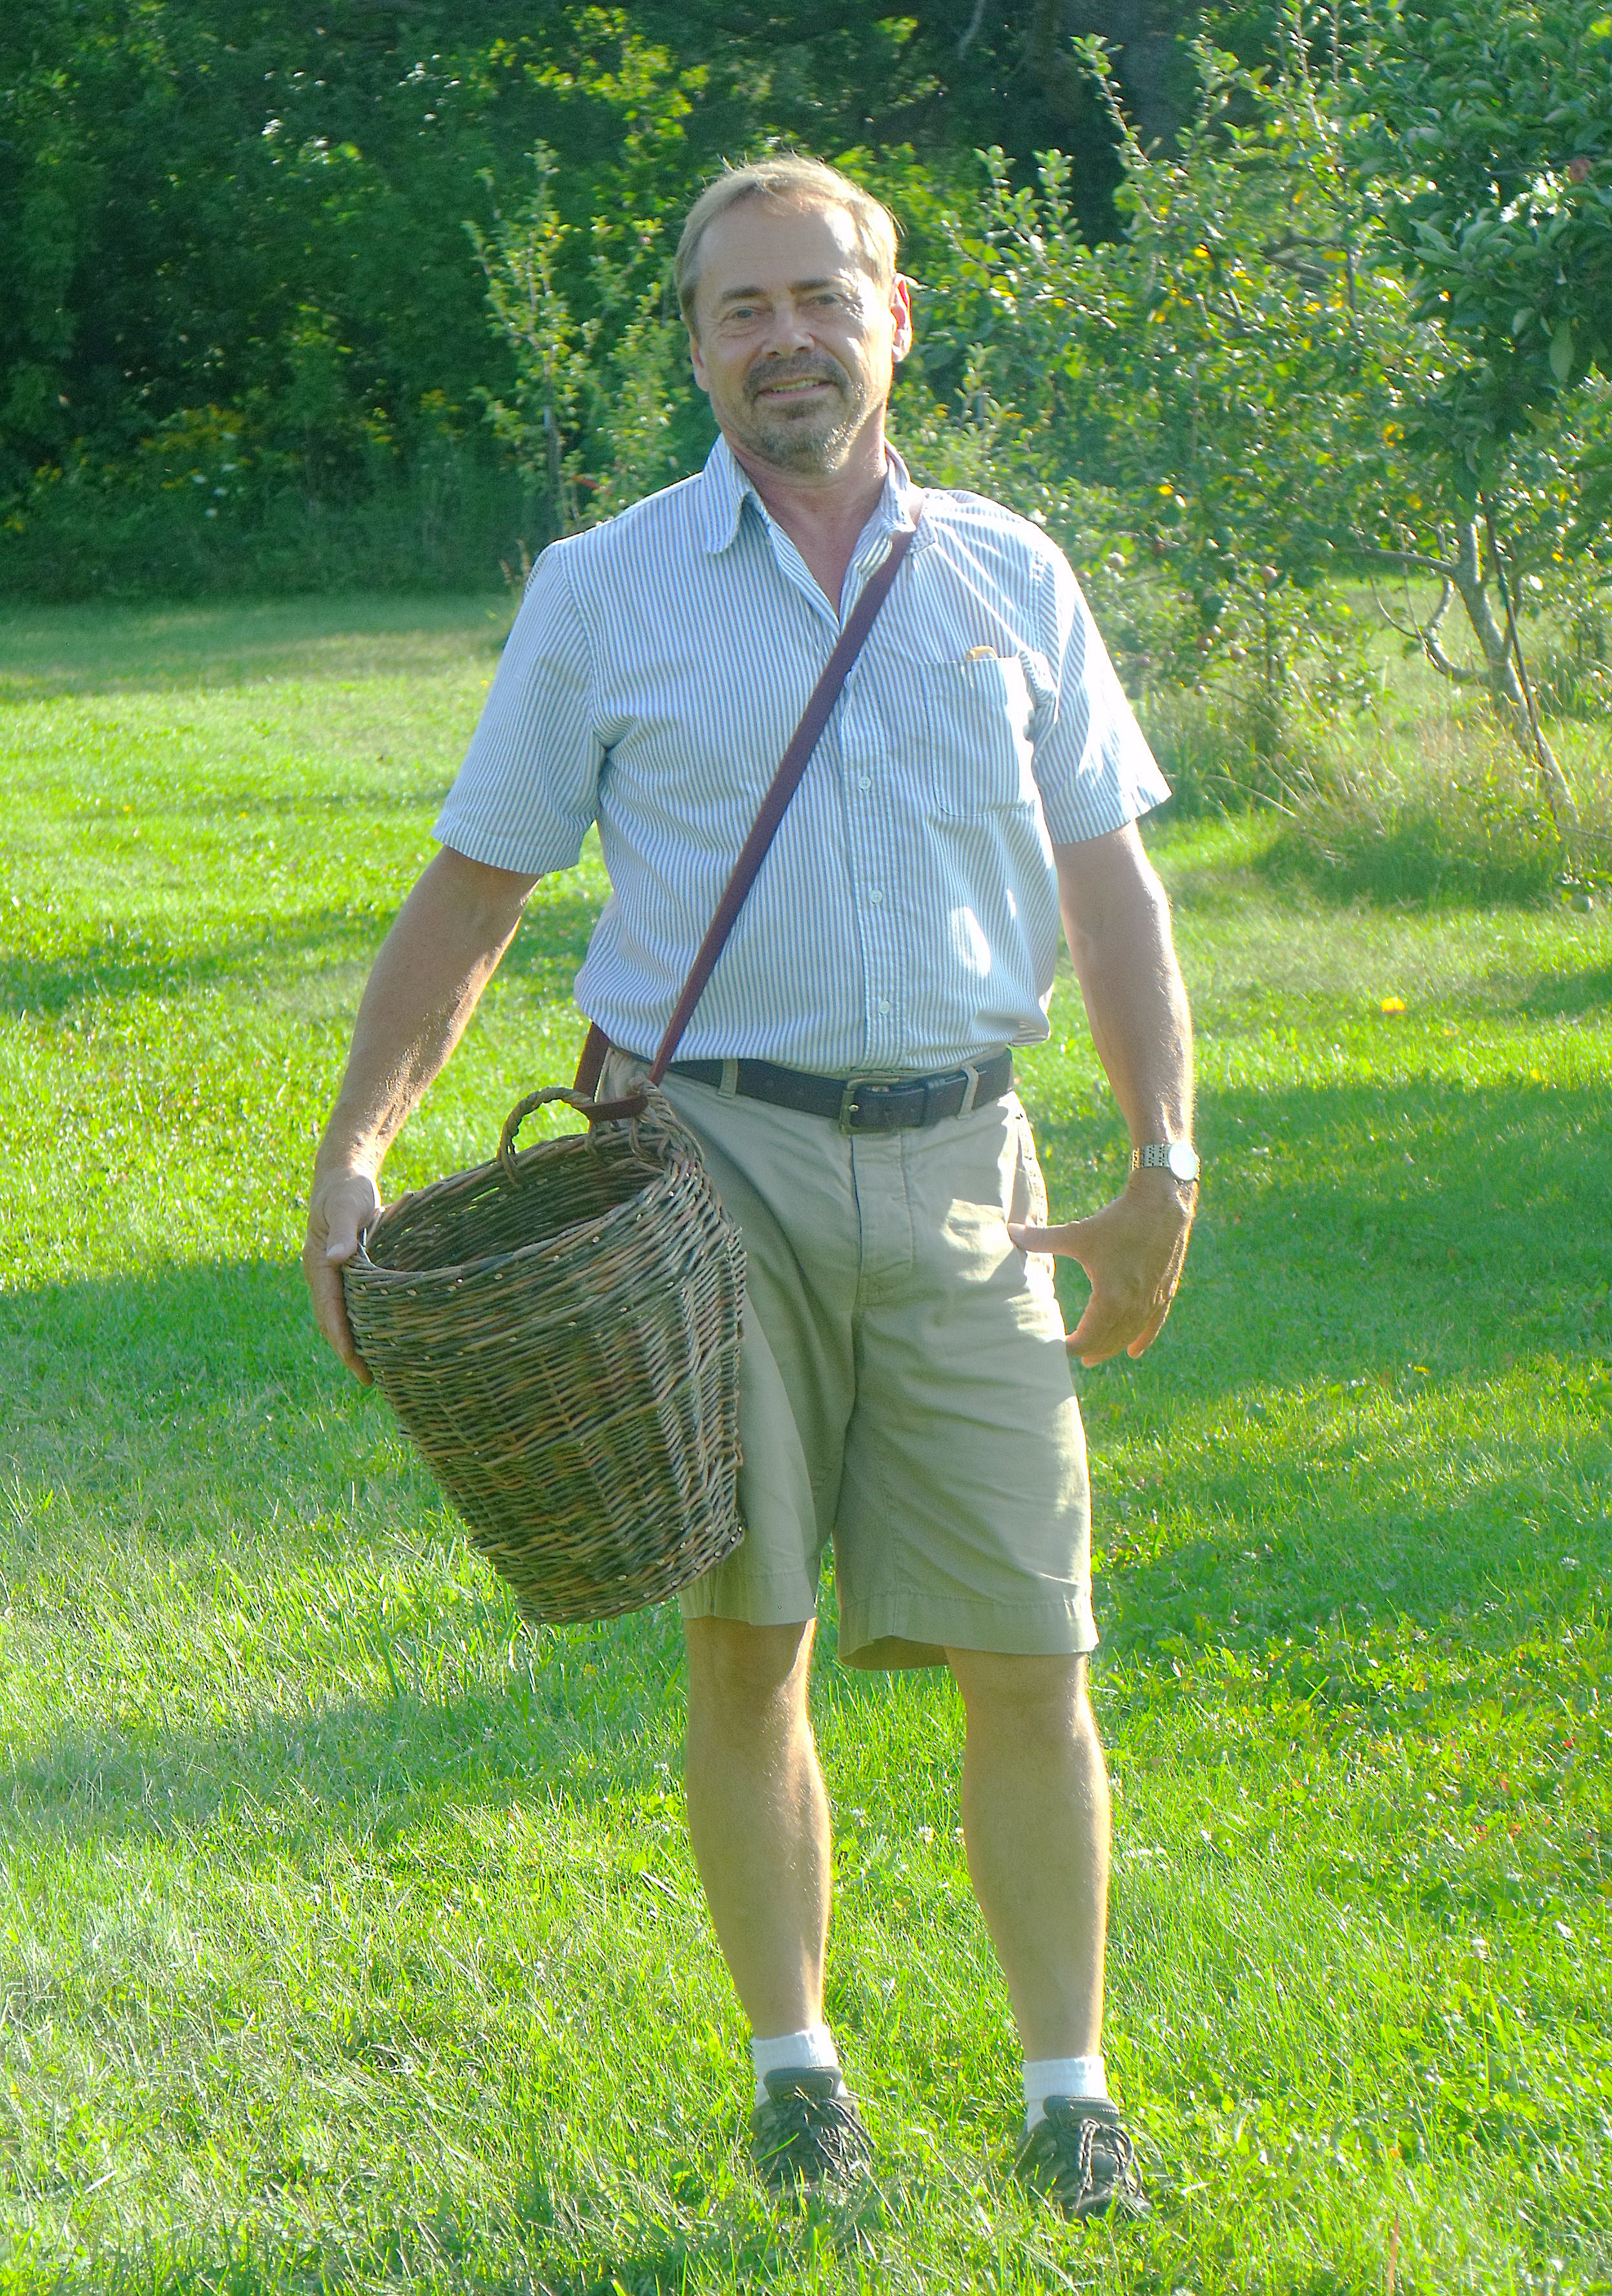 Dan Bussey, former Seed Savers Exchange orchard manager and advisor, collects apples in the Historic Orchard at Heritage Farm. Bussey maintained and grew the orchard collection during his years overseeing orchard operations.